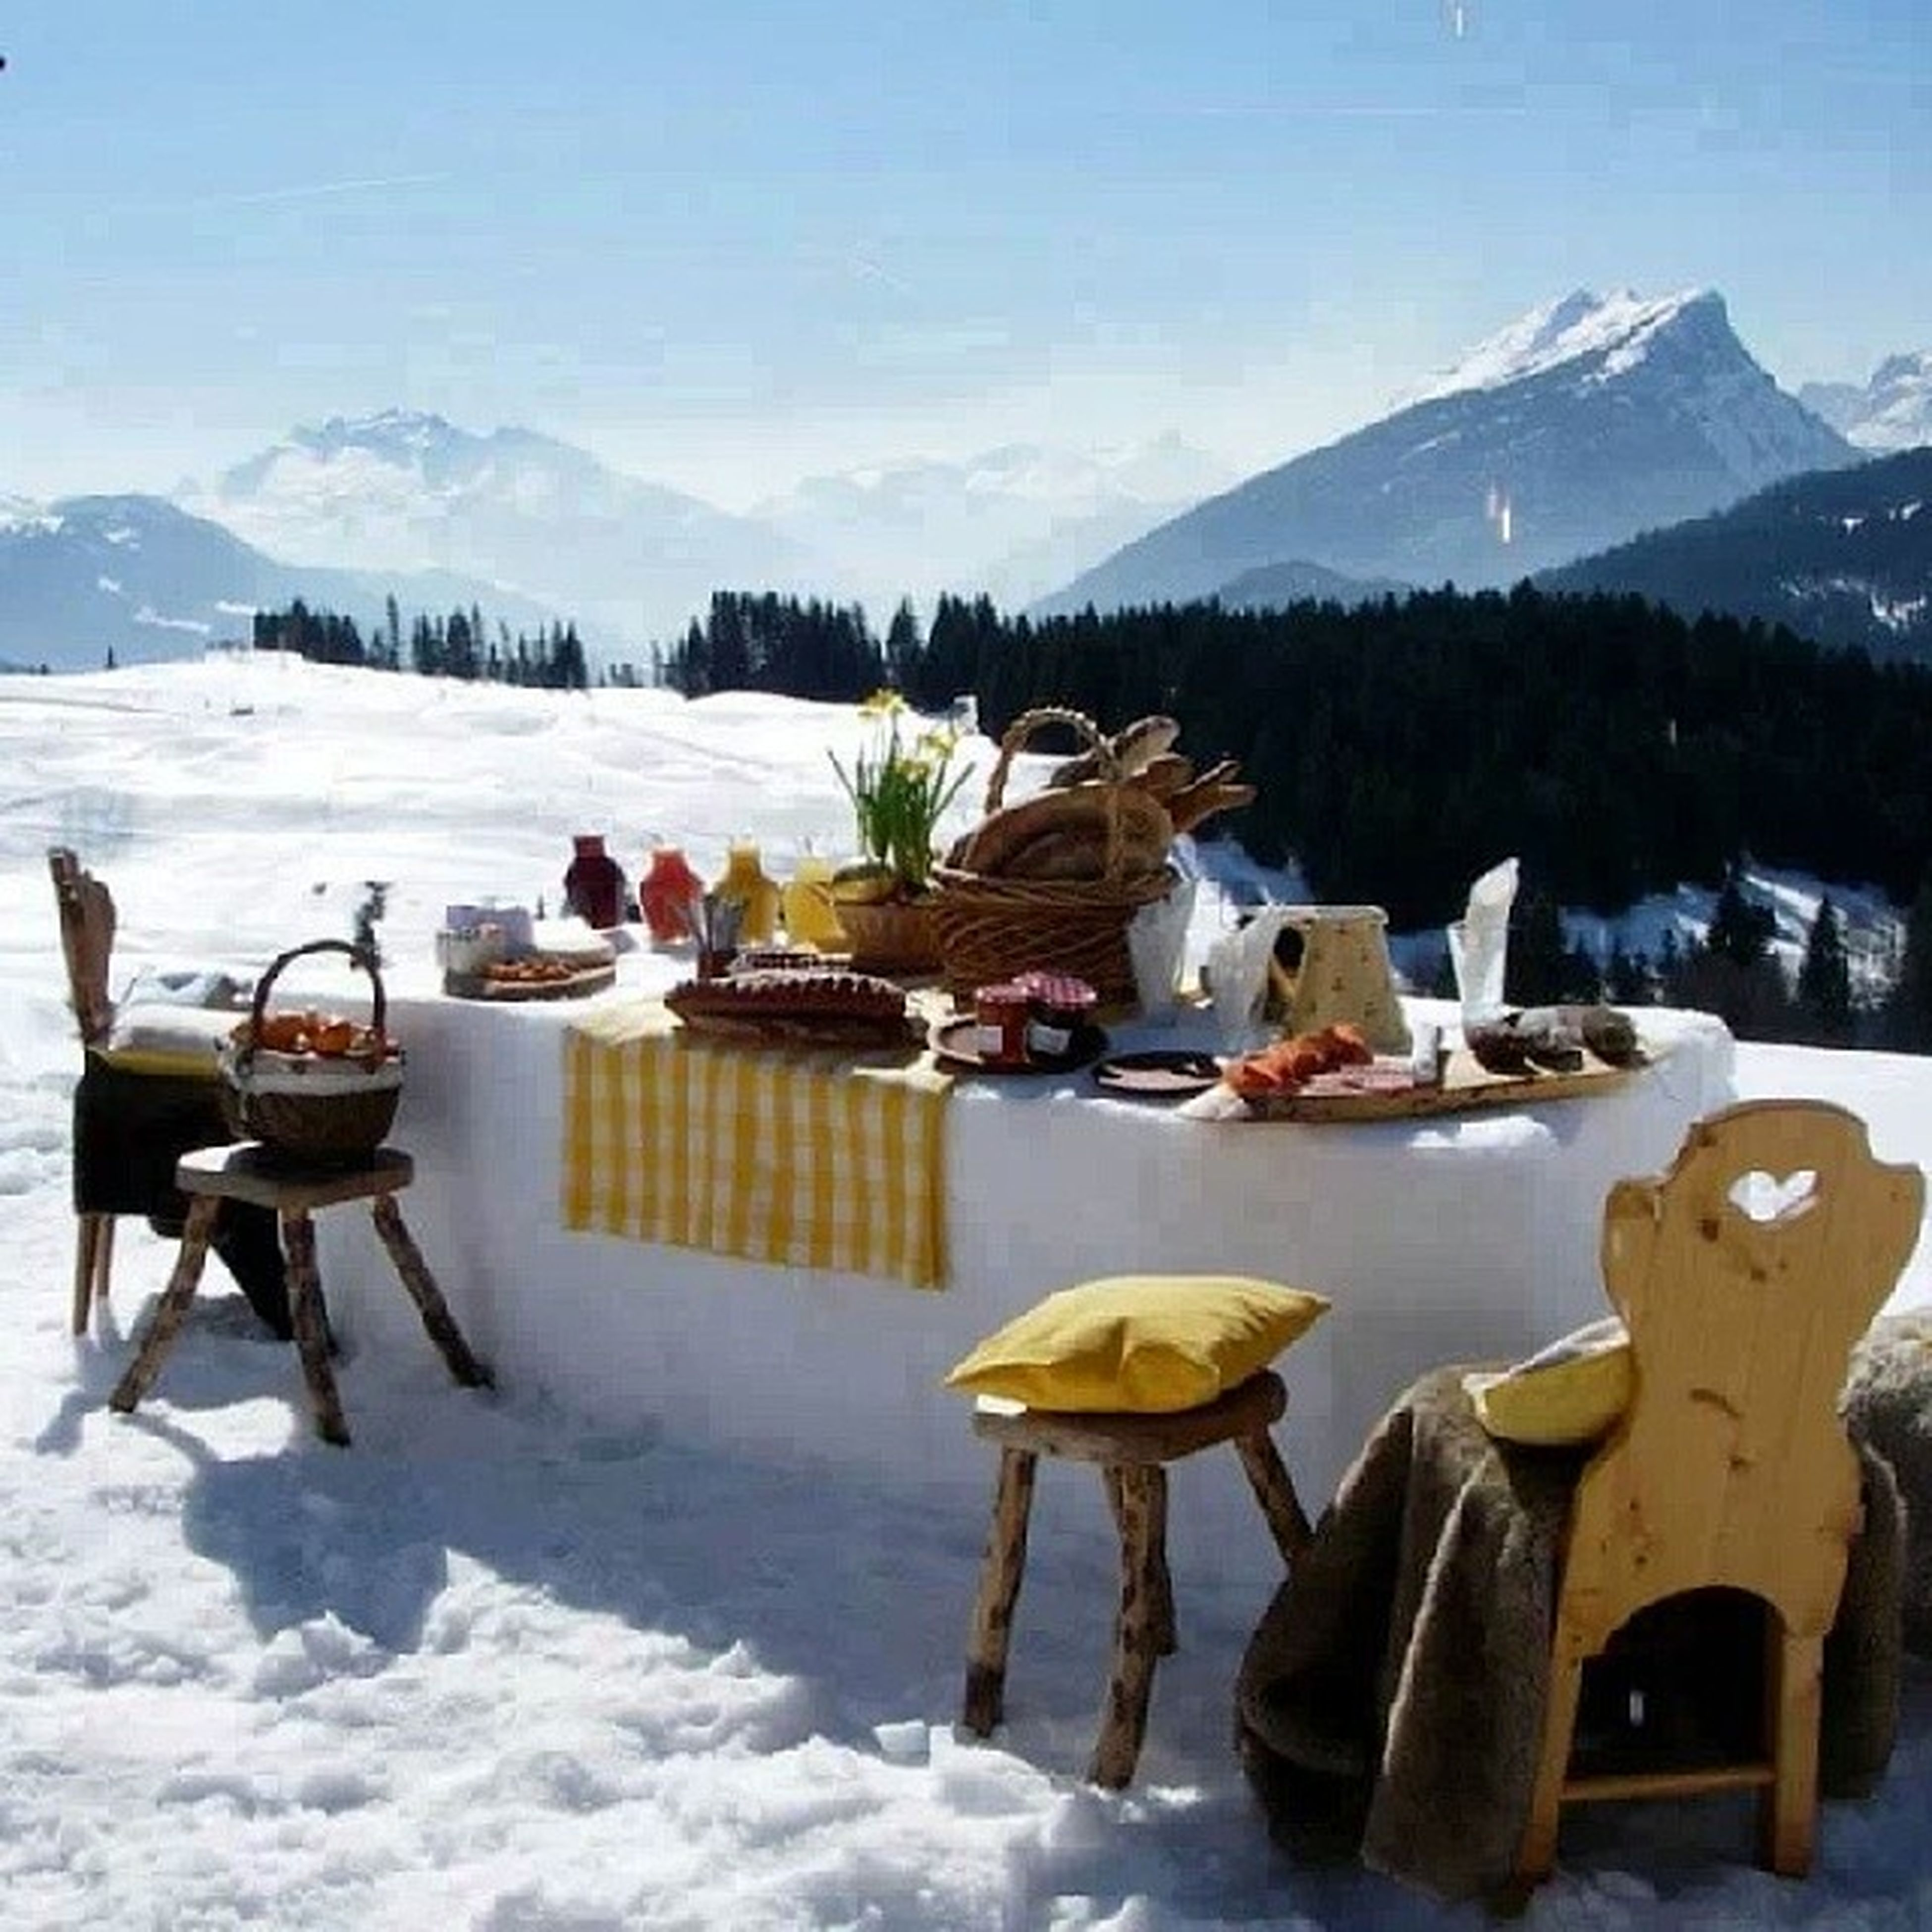 snow, winter, cold temperature, mountain, season, chair, sky, weather, tranquility, table, tranquil scene, nature, scenics, beauty in nature, water, mountain range, beach, sunlight, white color, frozen